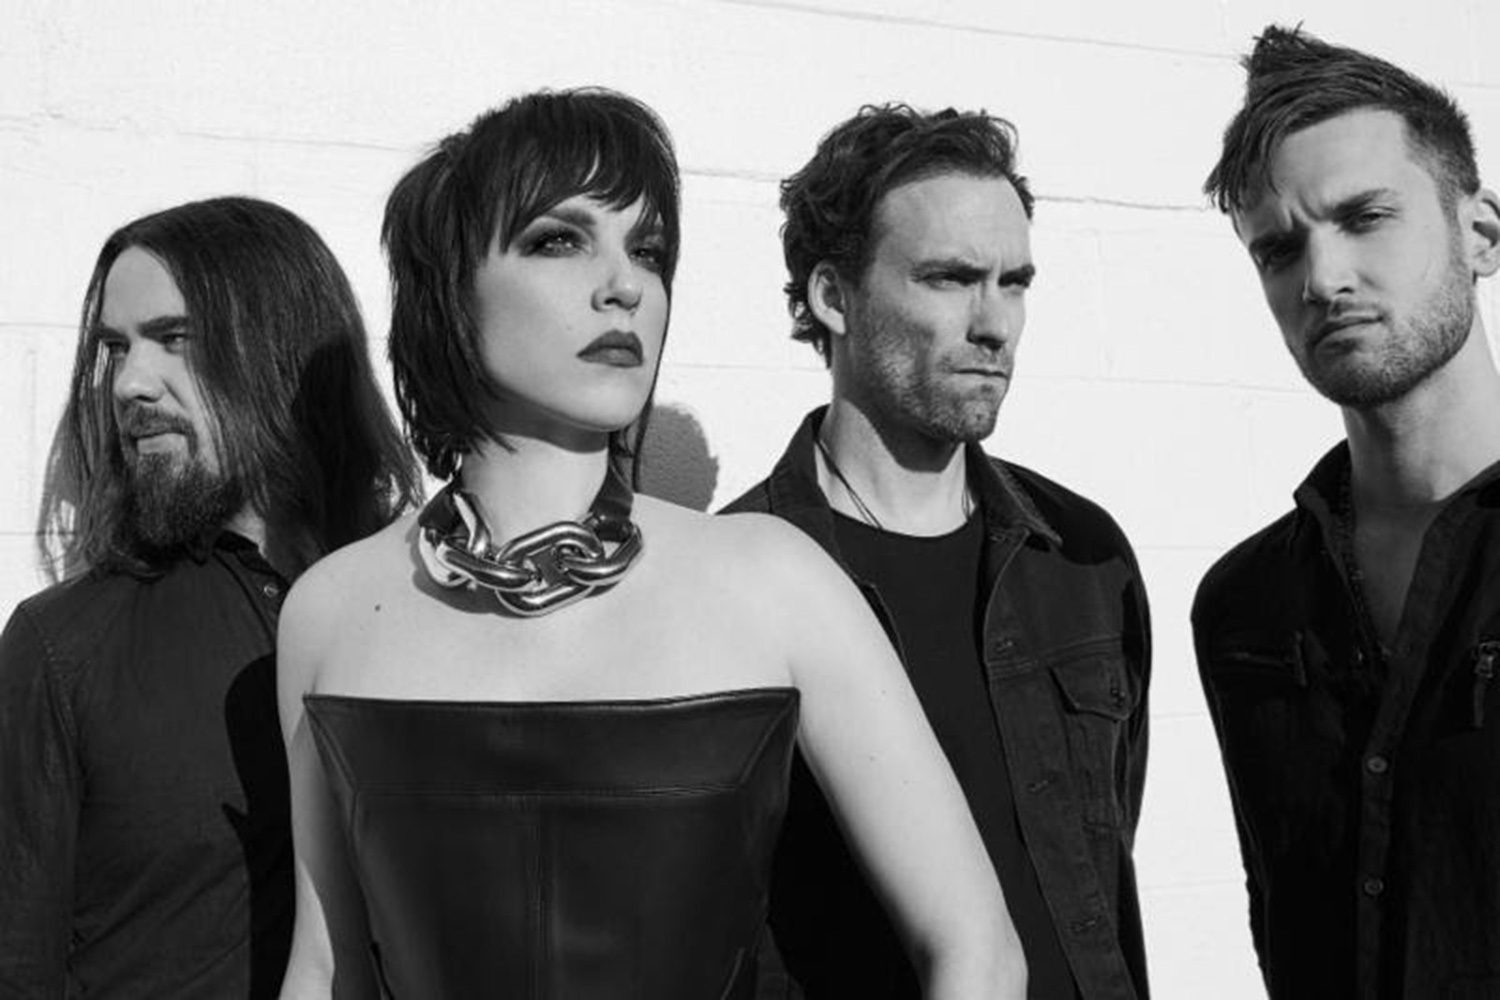 Halestorm have announced their new 'Reimagined' EP, which features both Amy Lee, and a cover of 'I Will Always Love You'